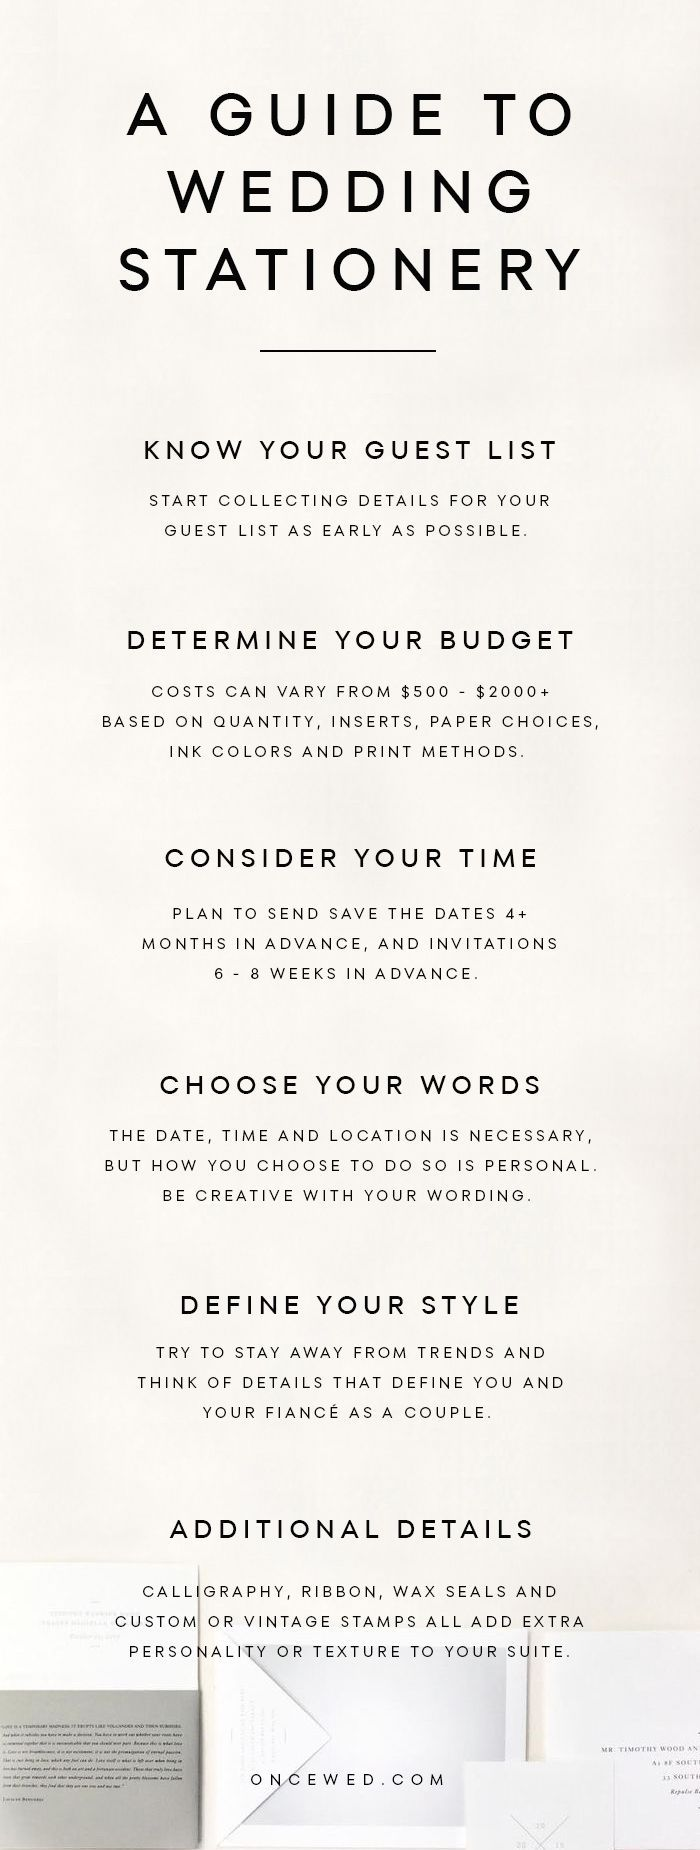 WeddingStationeryInfographic_Edited